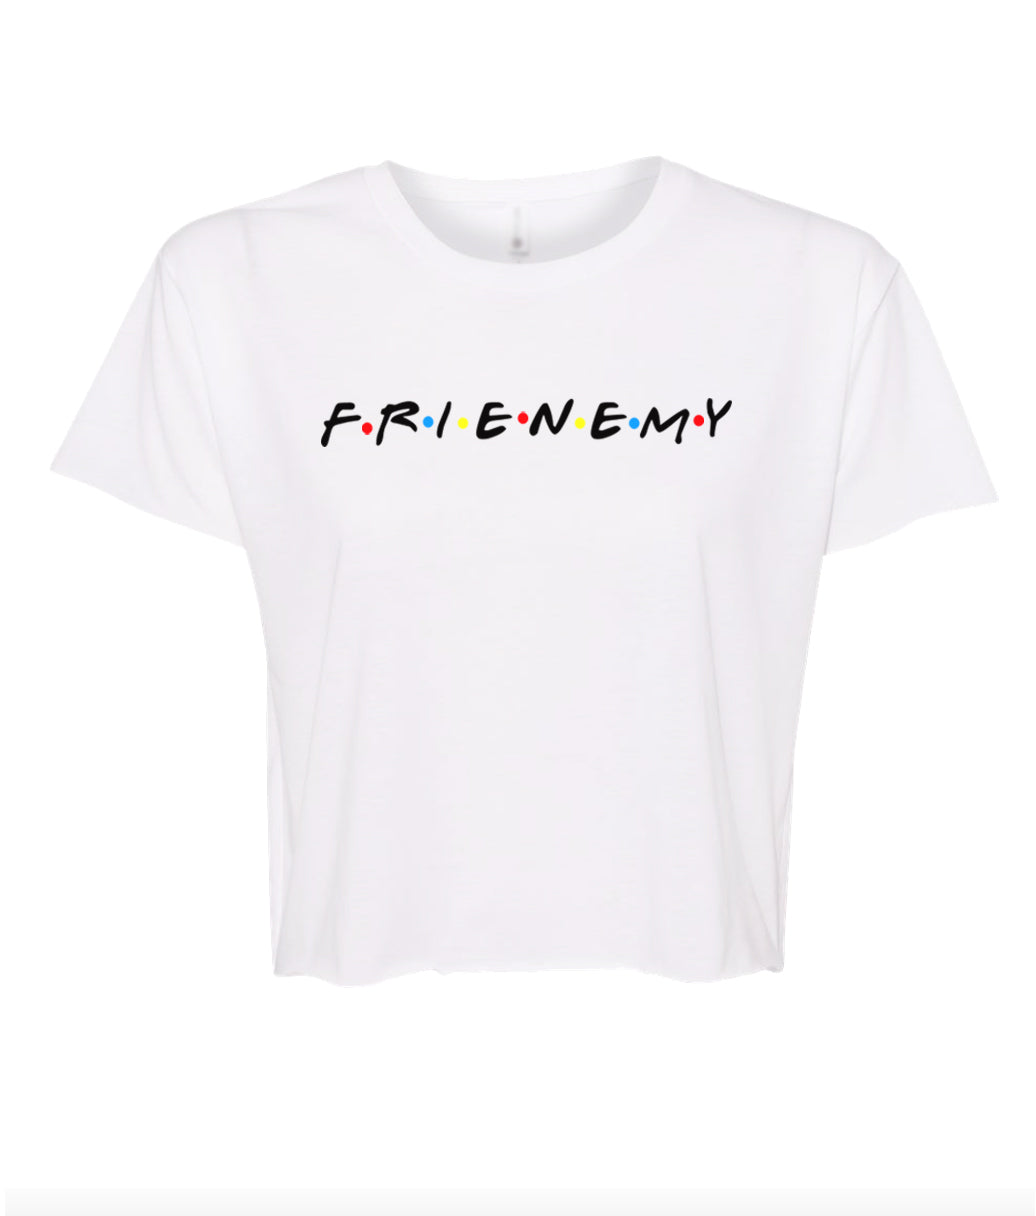 white frienemy crop top t shirt